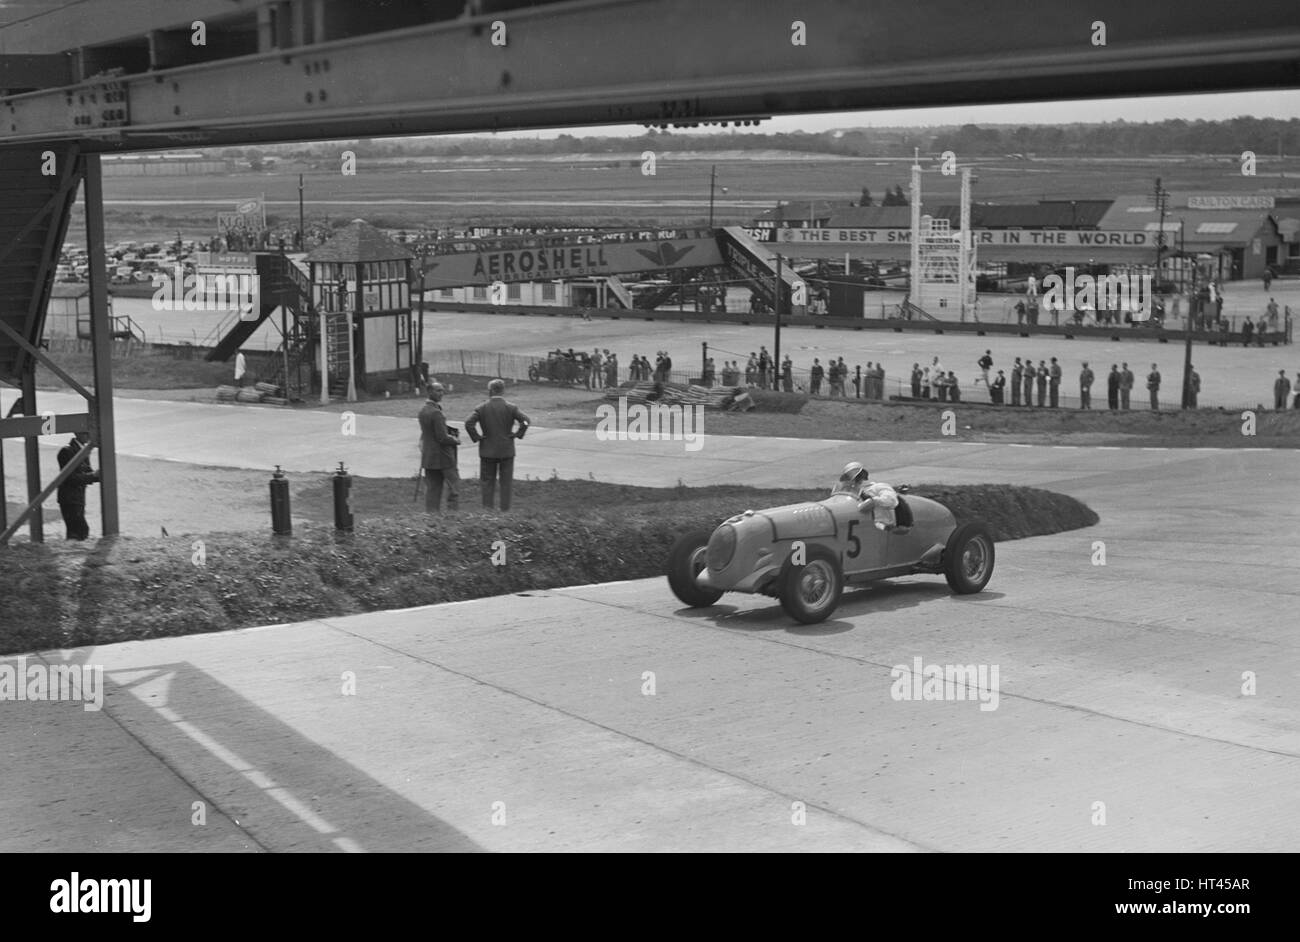 MG K3 of JHT Smith racing at Brooklands, Surrey, c1930s. Artist: Bill Brunell. - Stock Image